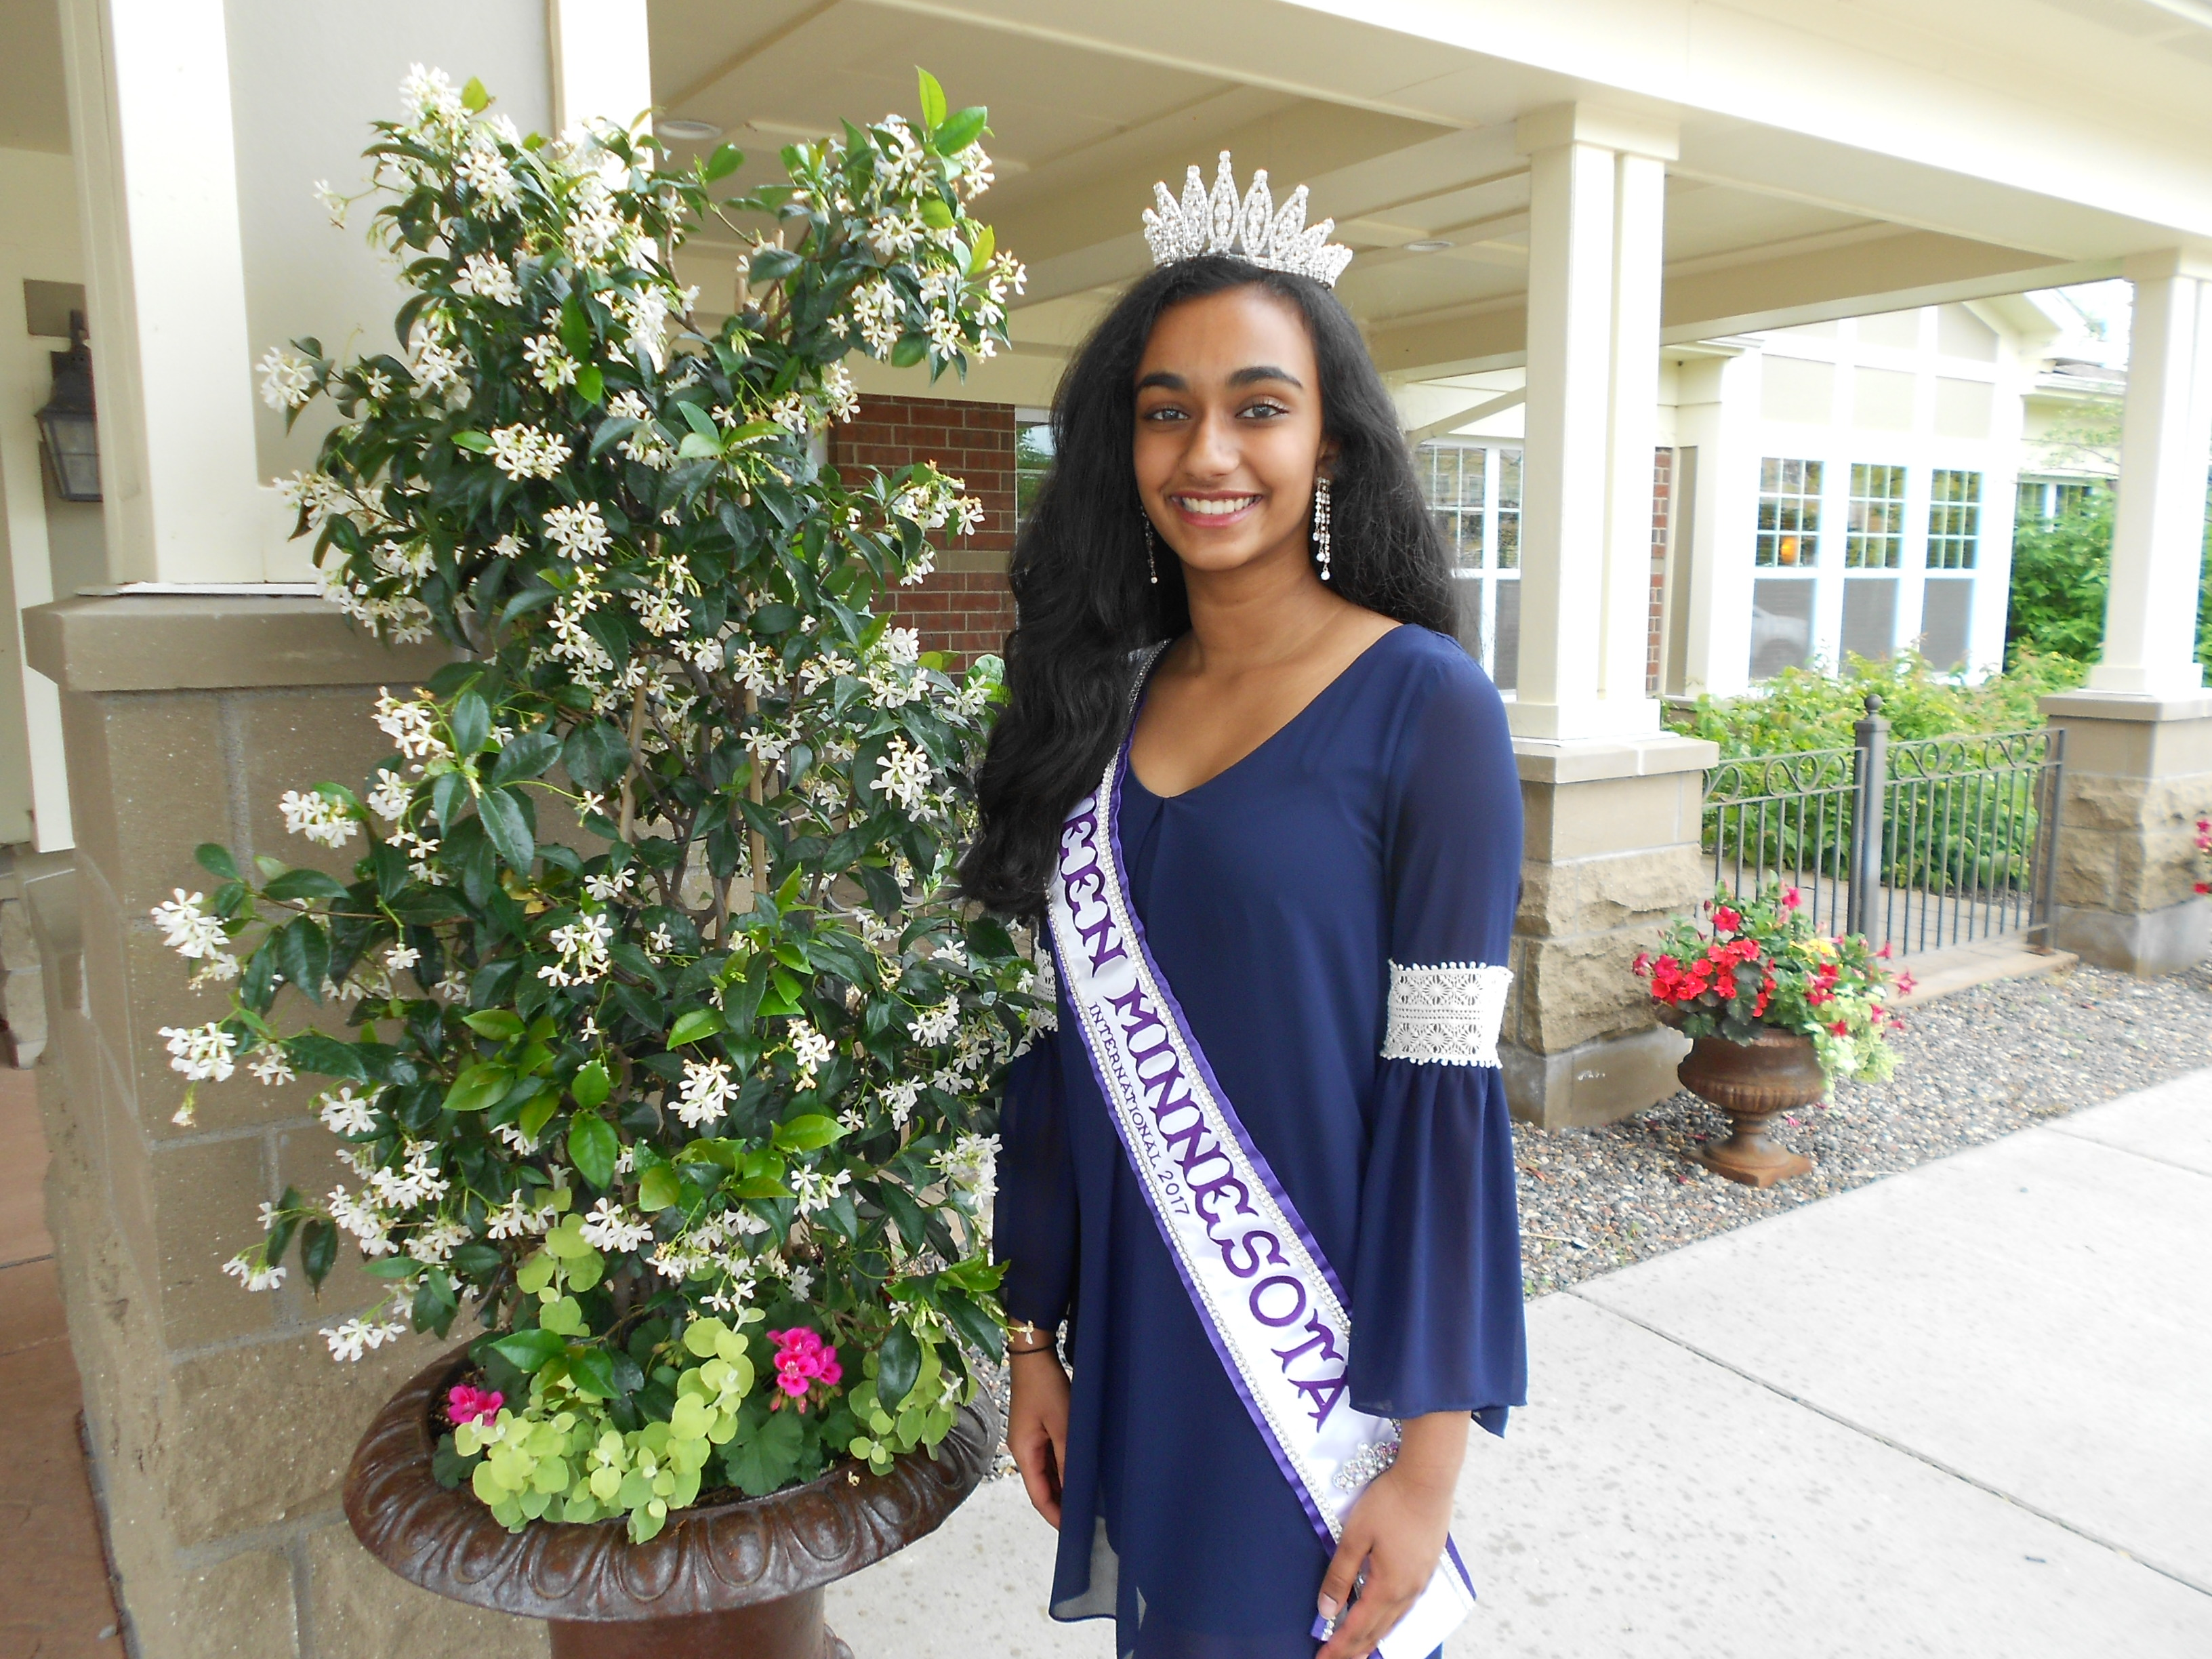 Miss plymouth teen competition in mn situation